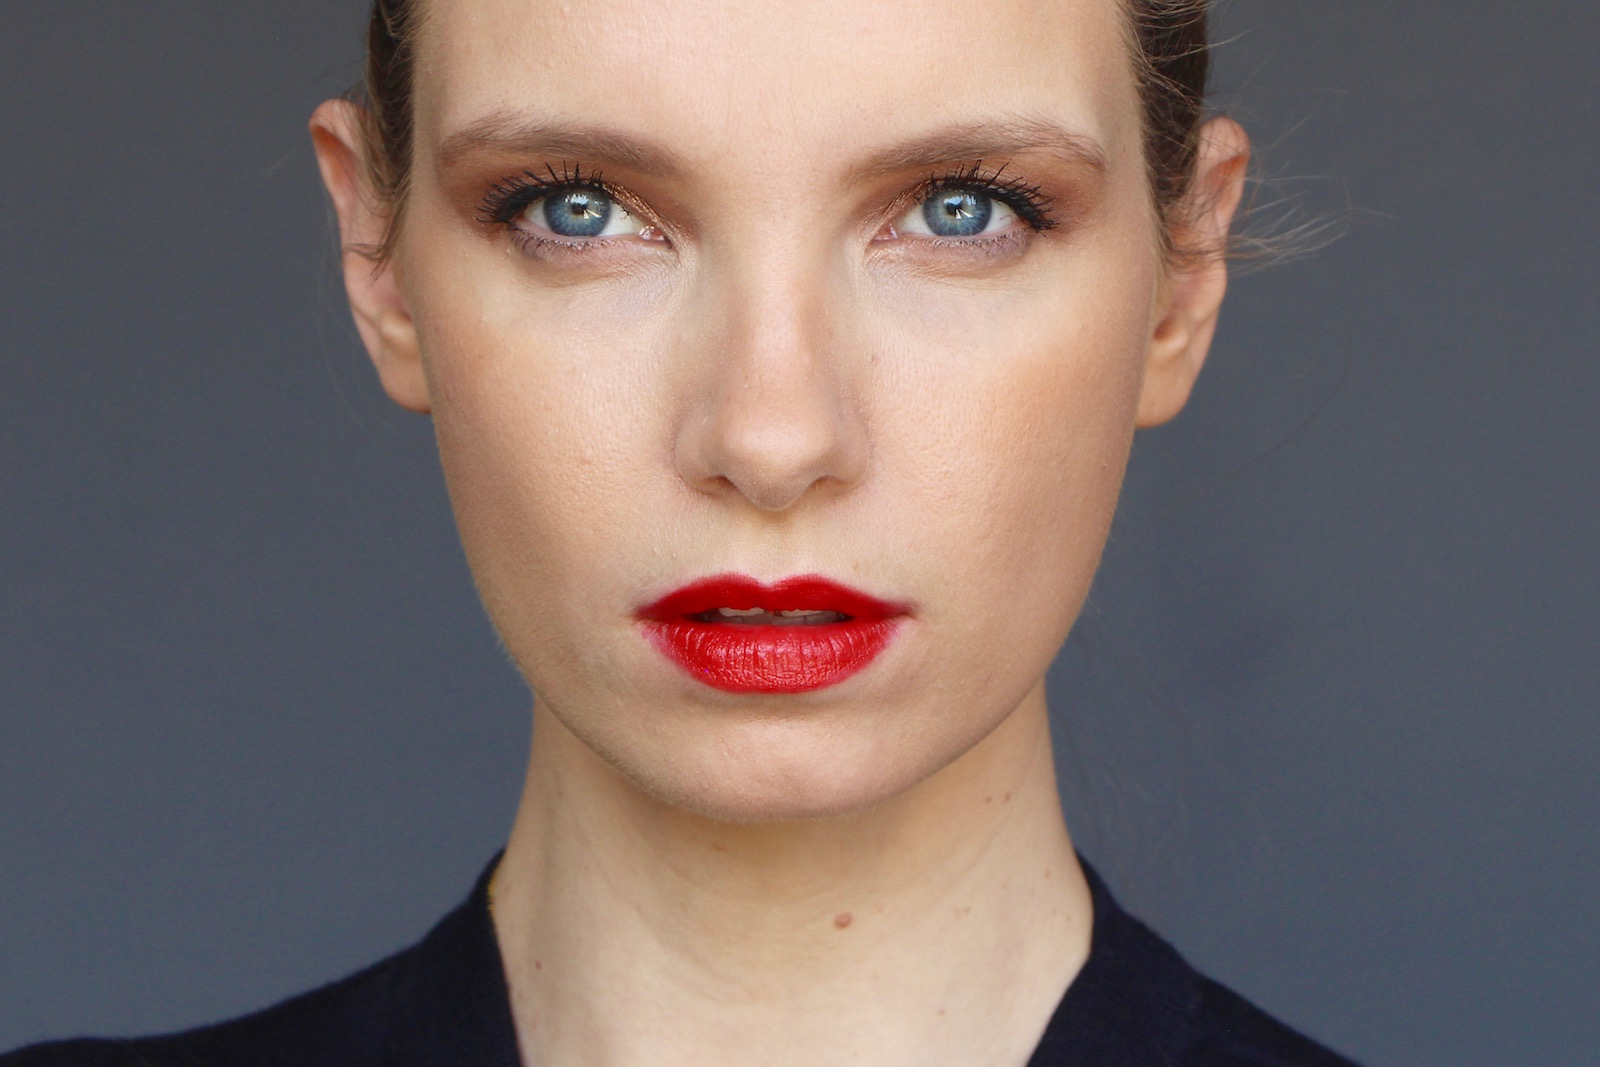 New way to wear red lipstick a model recommends